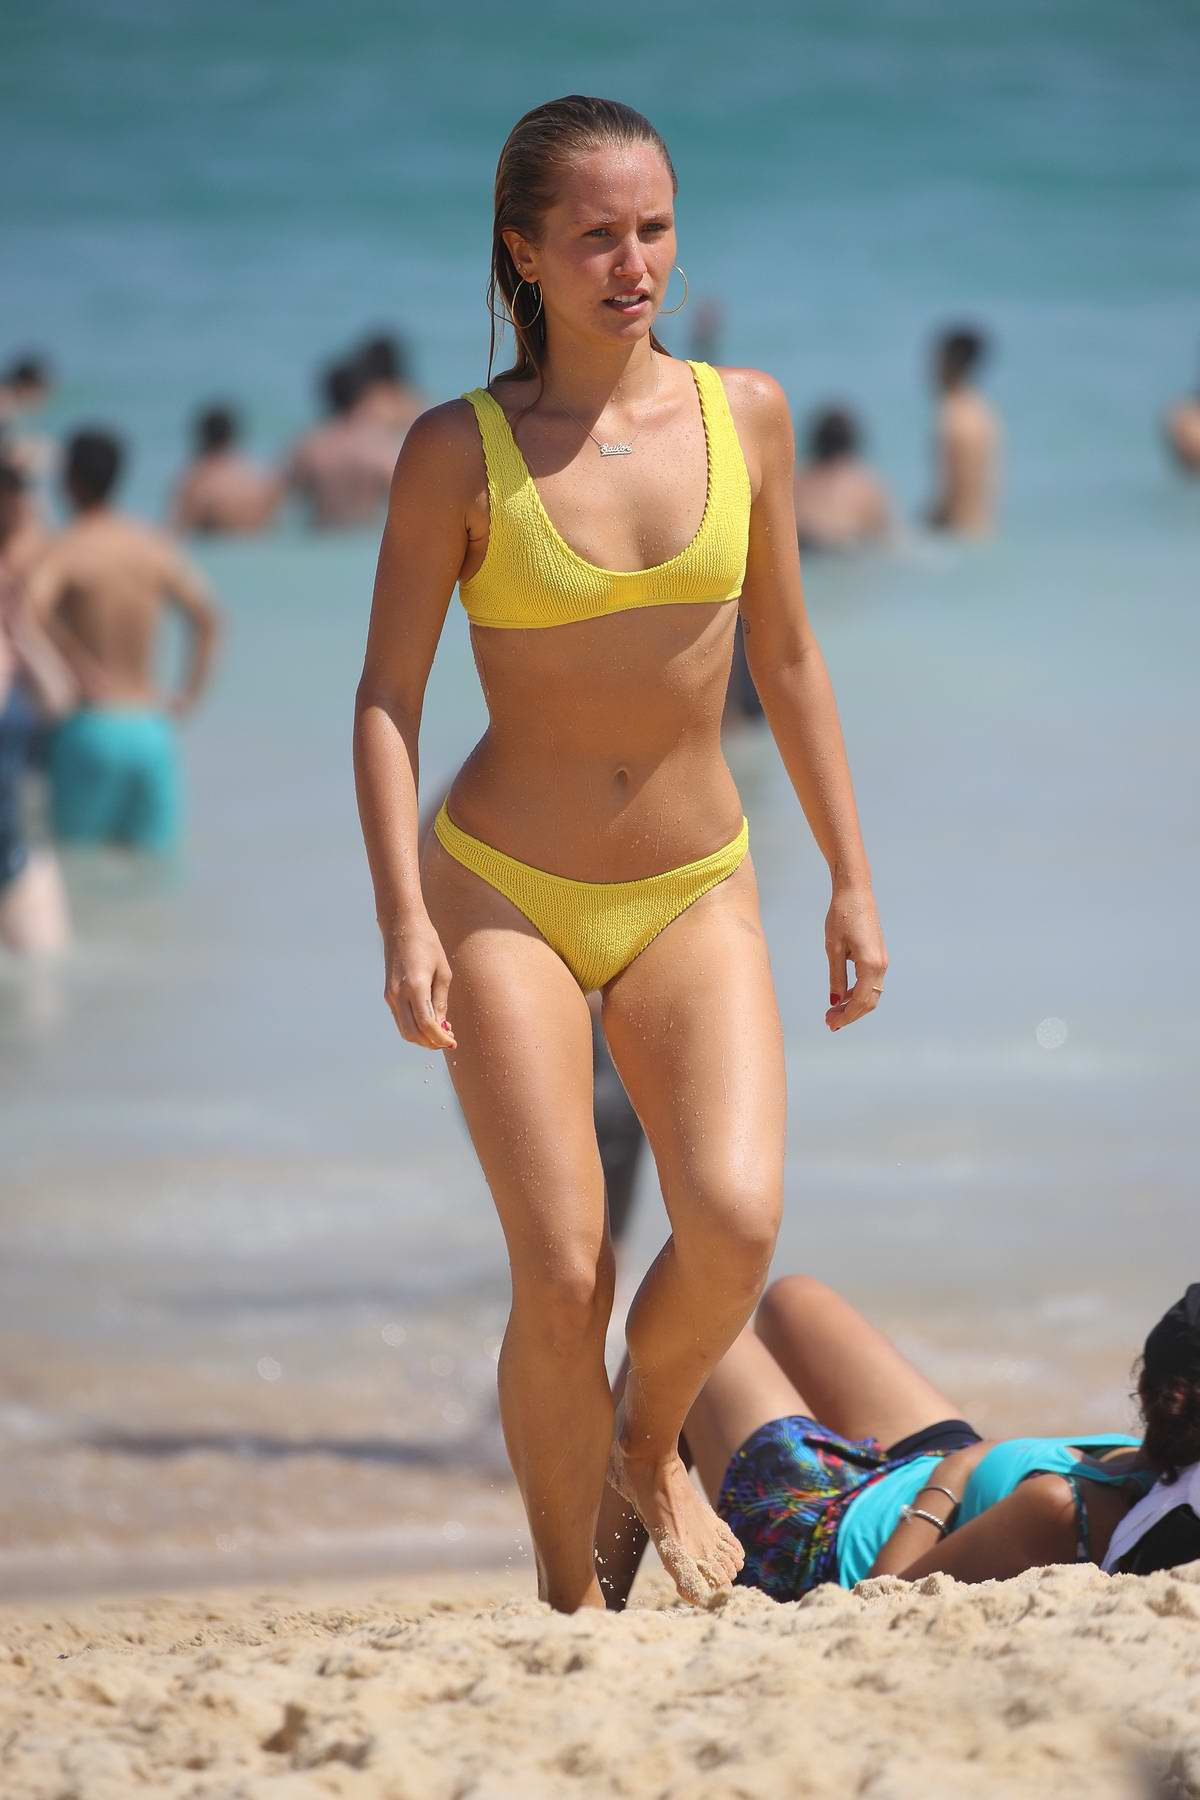 Sailor Brinkley Cook wears a yellow bikini as she takes a dip in the ocean on Australia Day in Bondi, Sydney, Australia